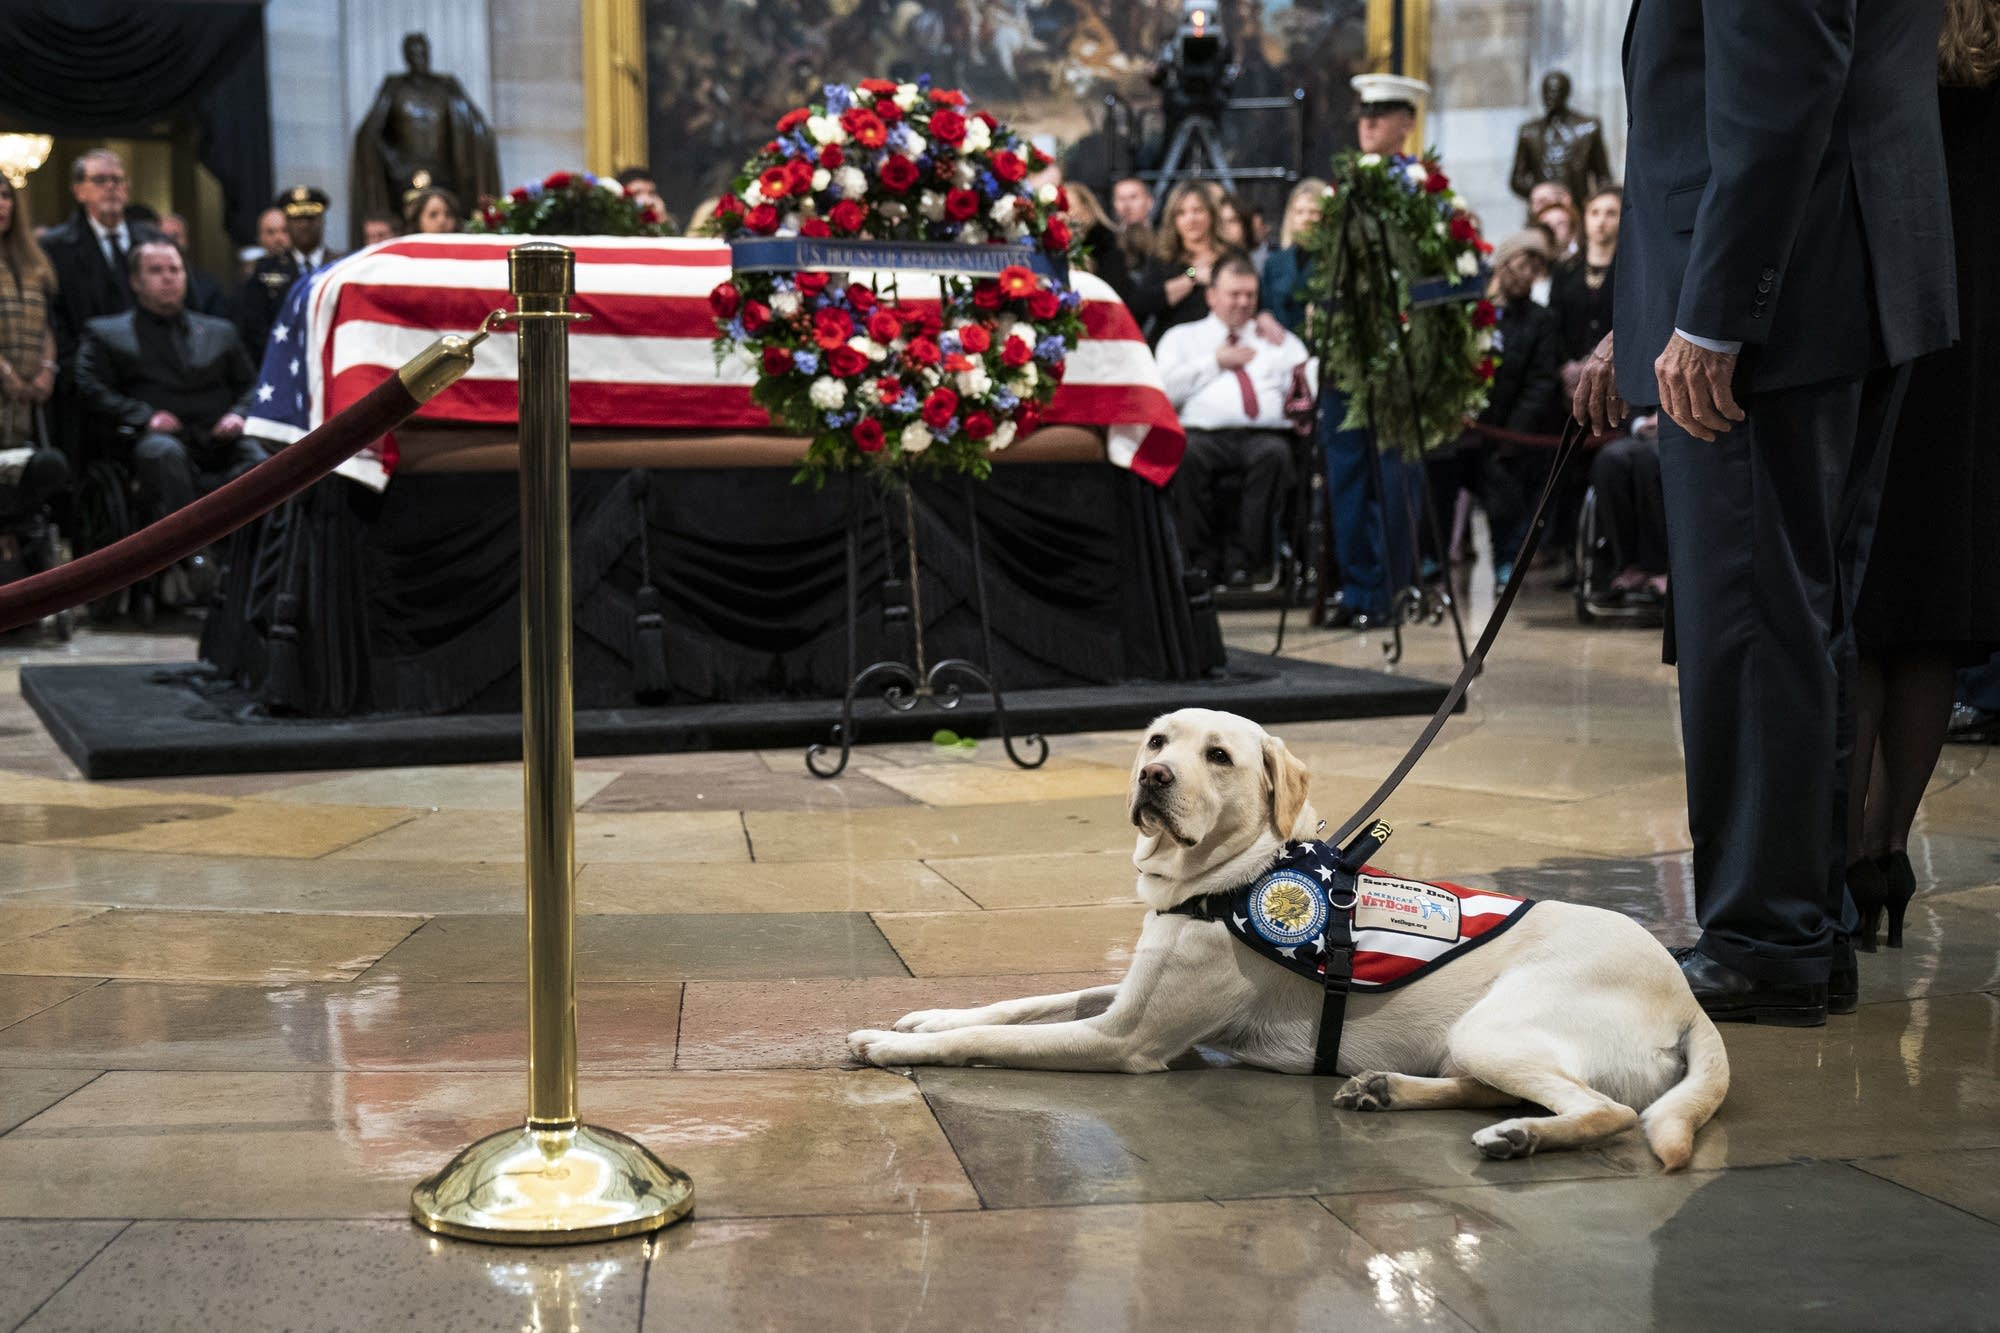 Sully sits near the casket of the late President George H.W. Bush.